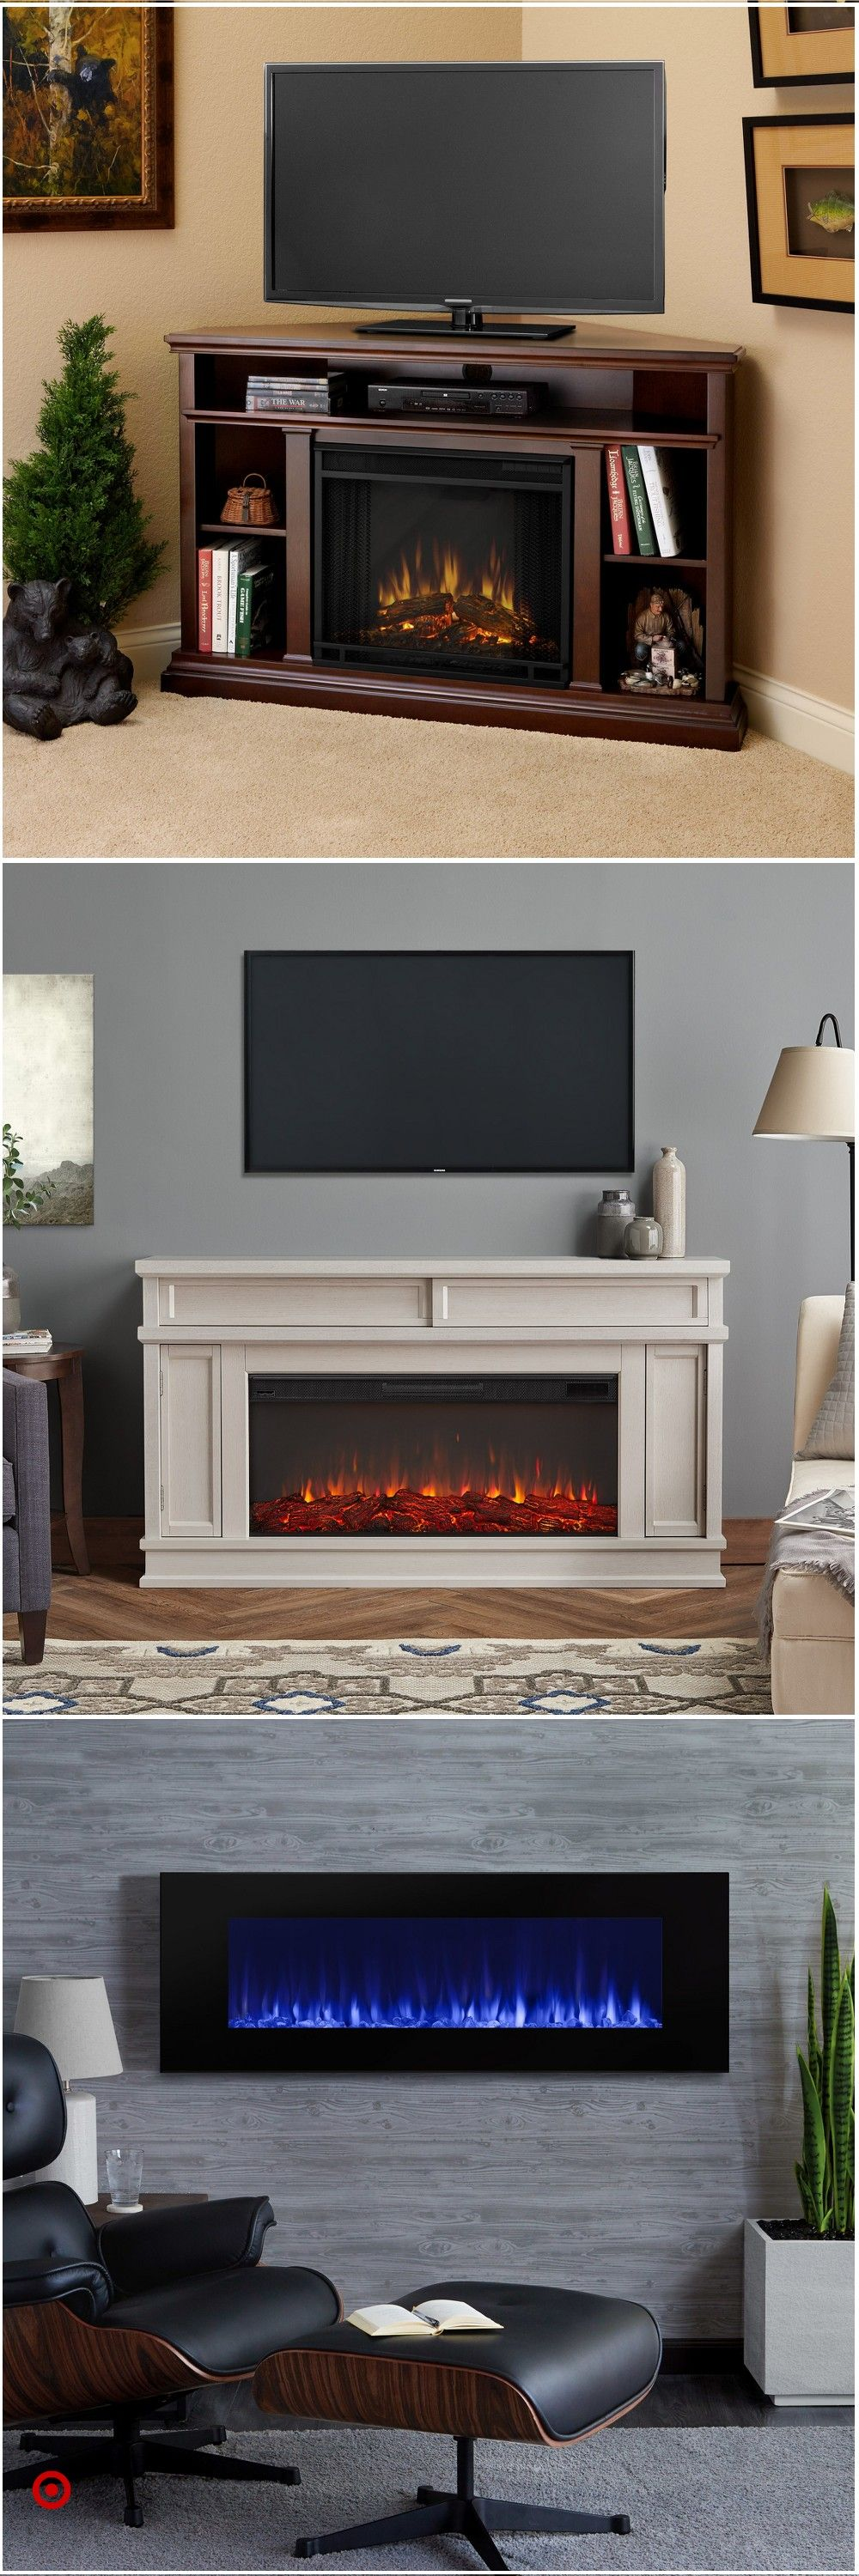 Shop Target For Decorative Fireplaces You Will Love At Great Low Prices Free Shipping On Orders Of 35 Fireplace Decor Home Cinema Room Family Room Design